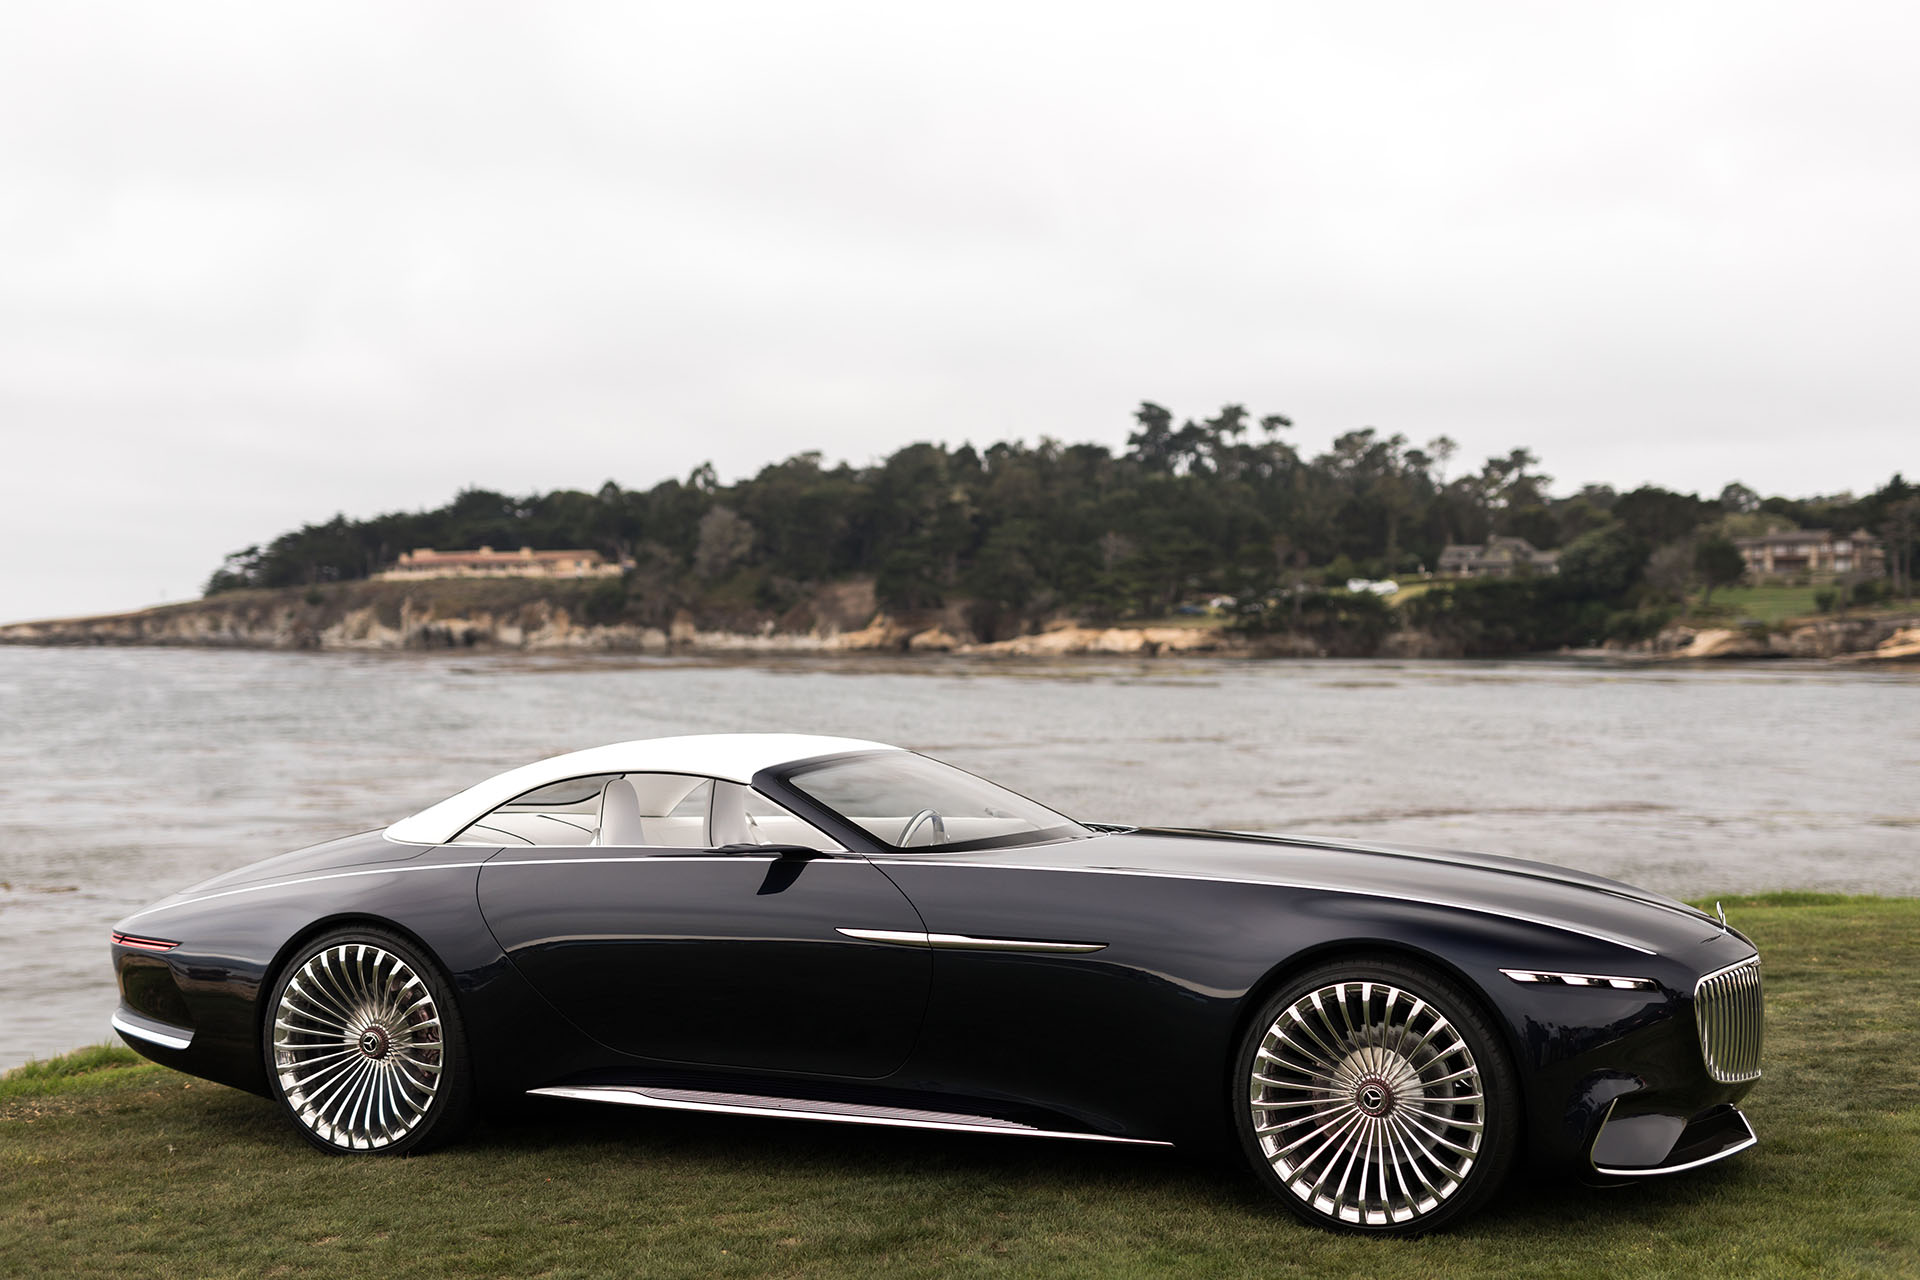 2017 Monterey: The Vision MercedesMaybach 6 Cabriolet previews the future in opulent, opentop